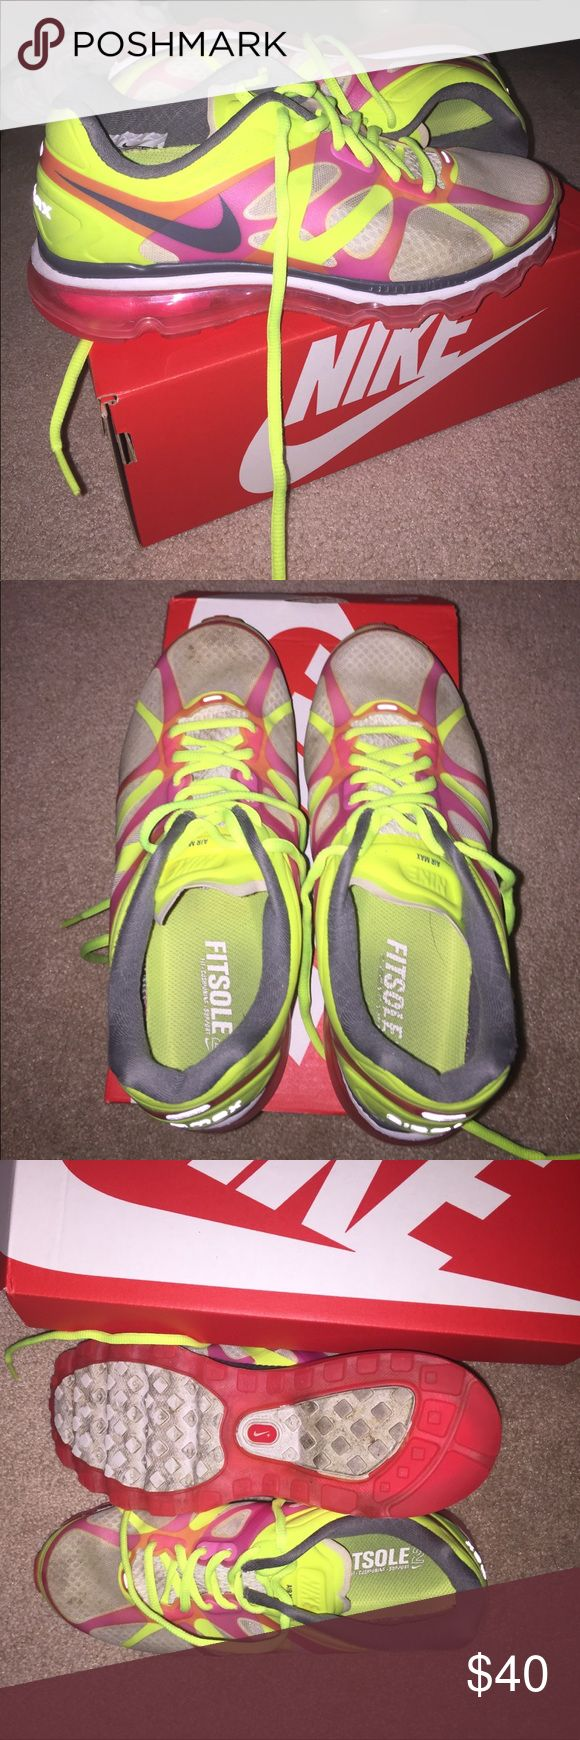 Nike air max tennis shoes Neon Nike air max tennis shoes, gentler used with little wear, with box Nike Shoes Sneakers